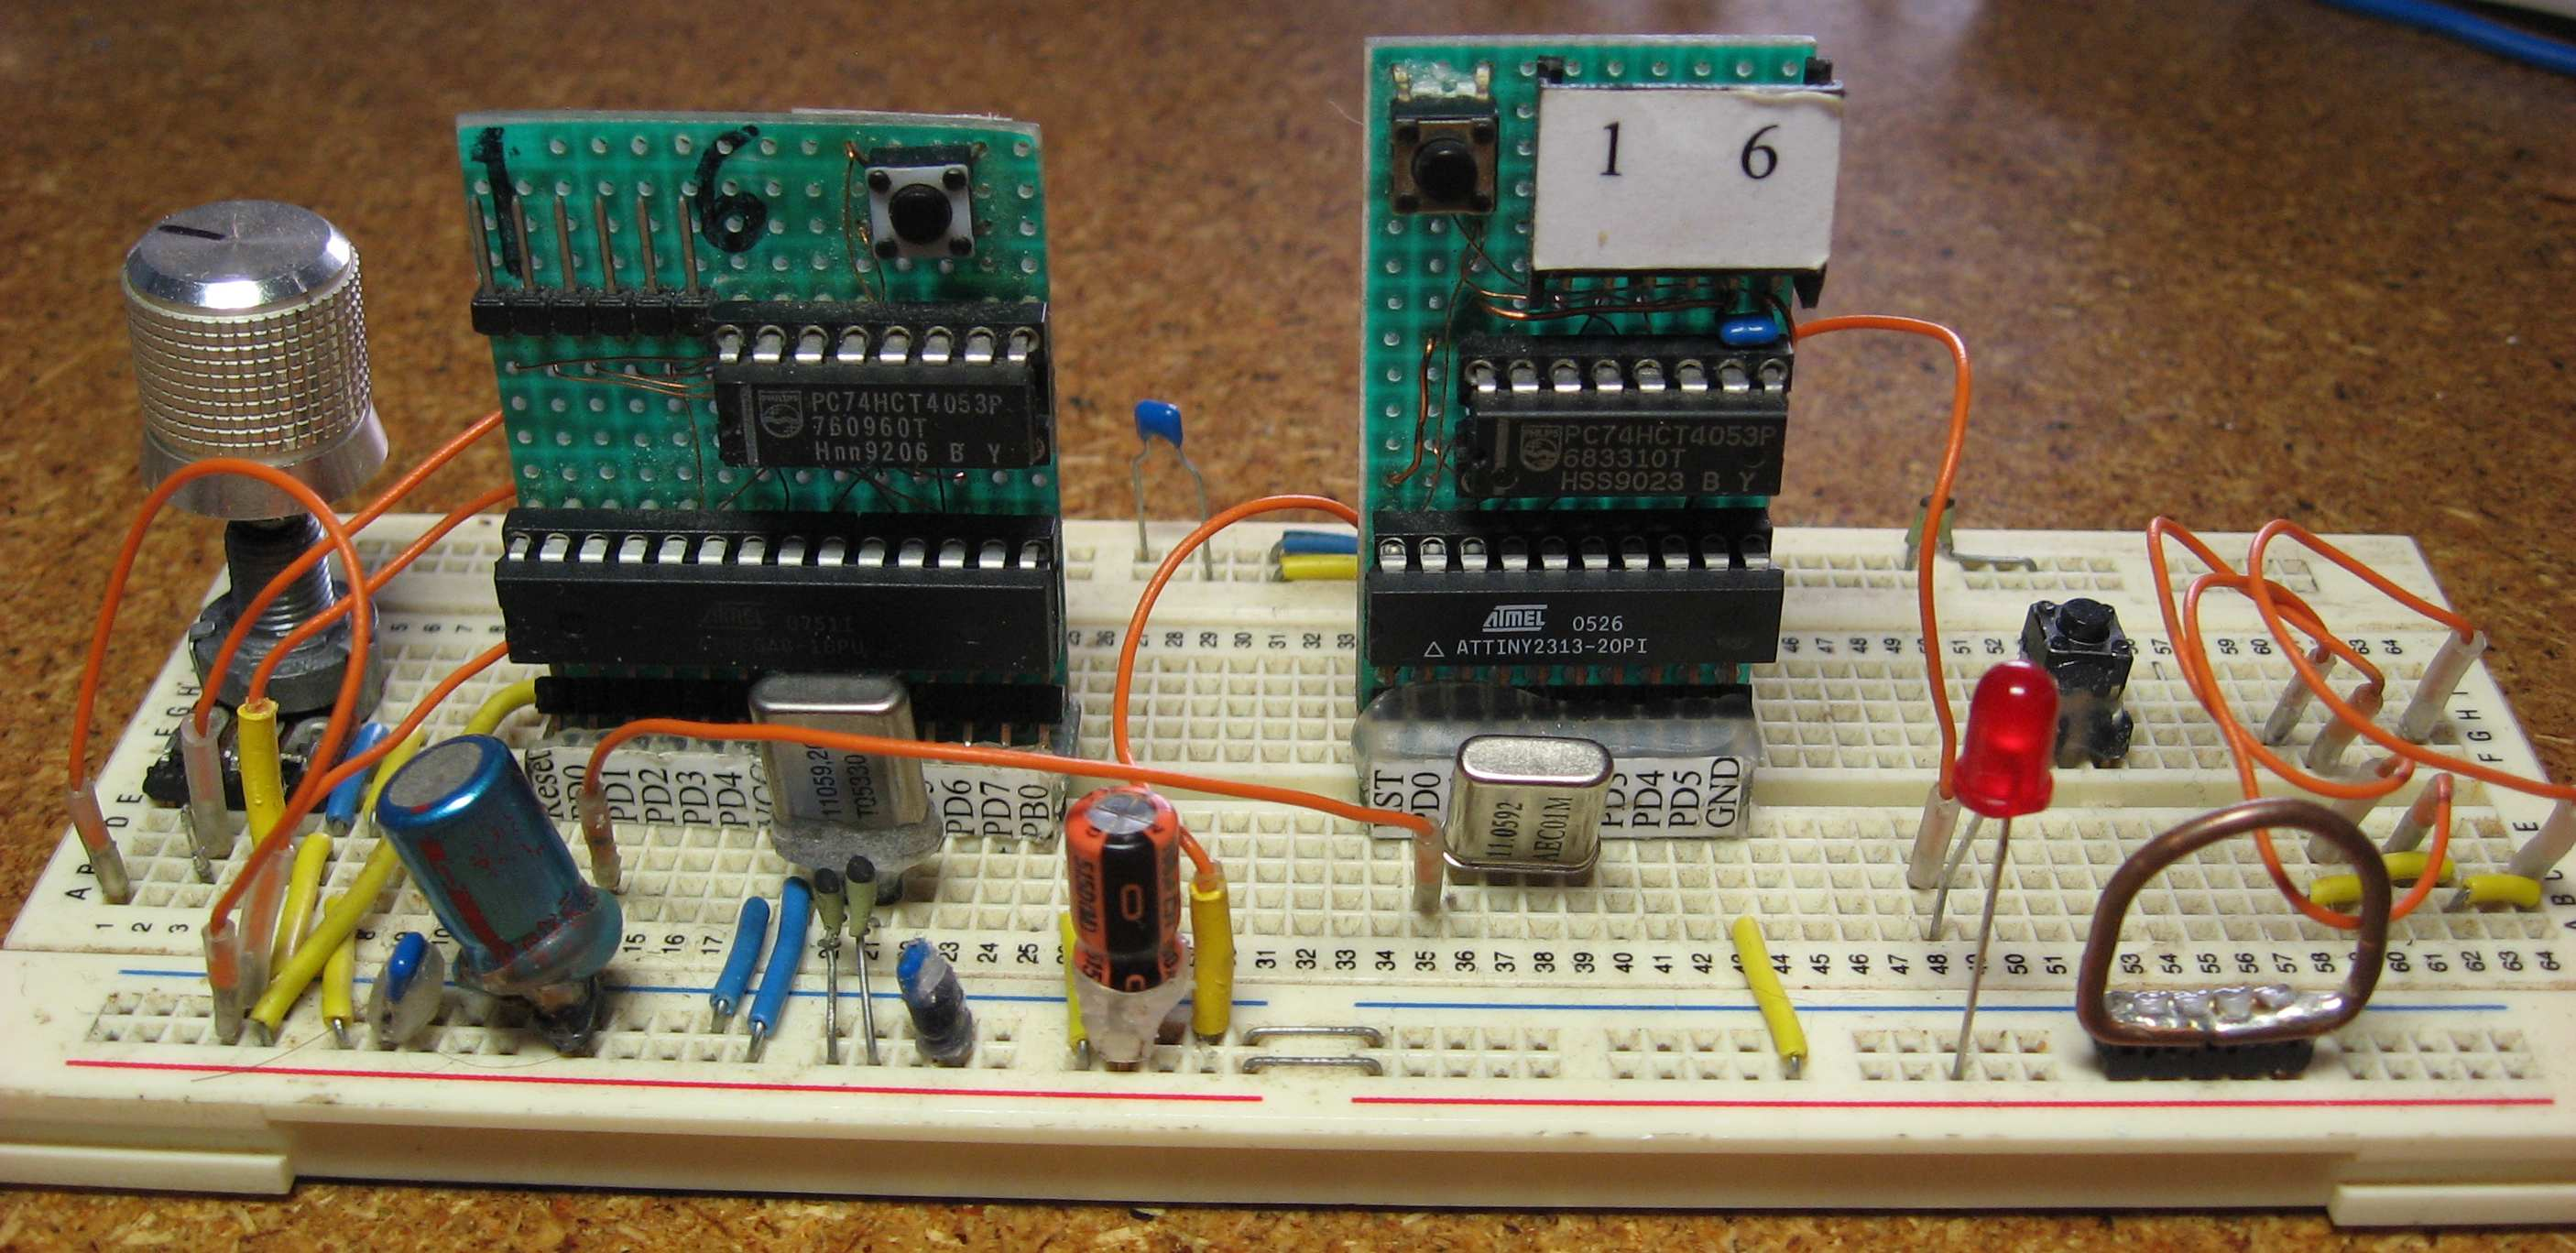 Easy Breadboarding using ATMega microcontroller